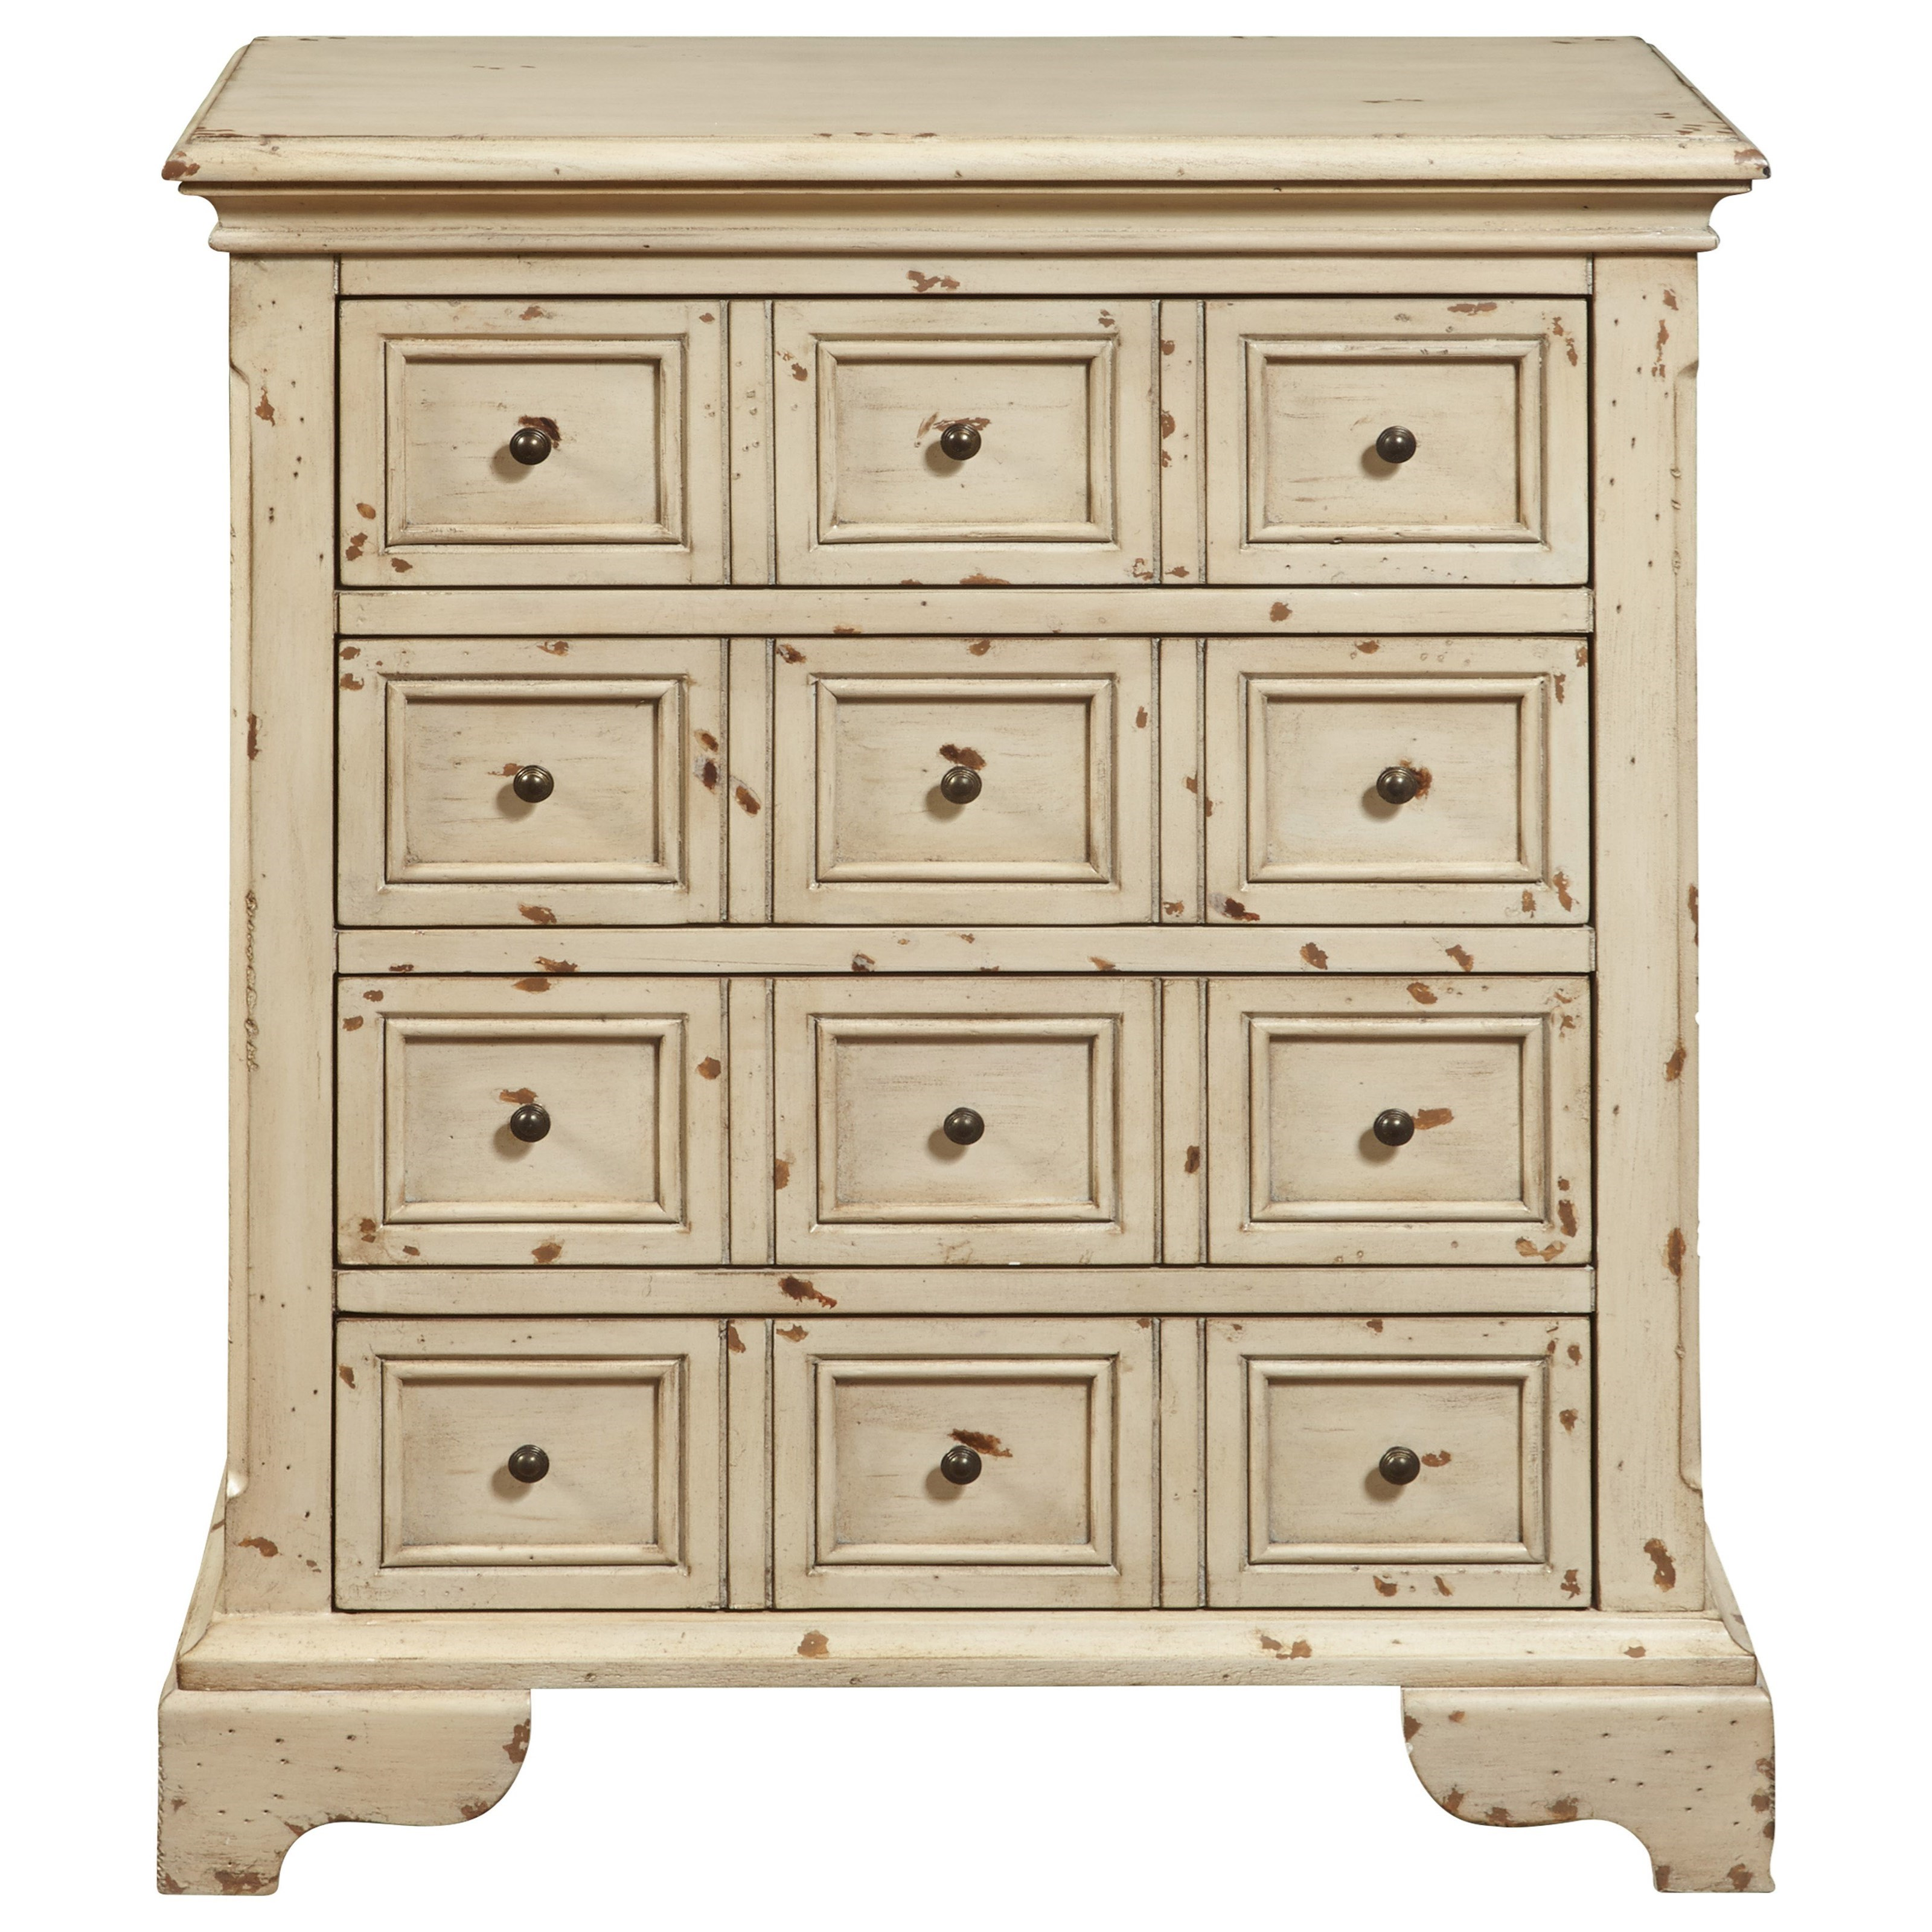 Pulaski Furniture Accents 4 Drawer Accent Chest